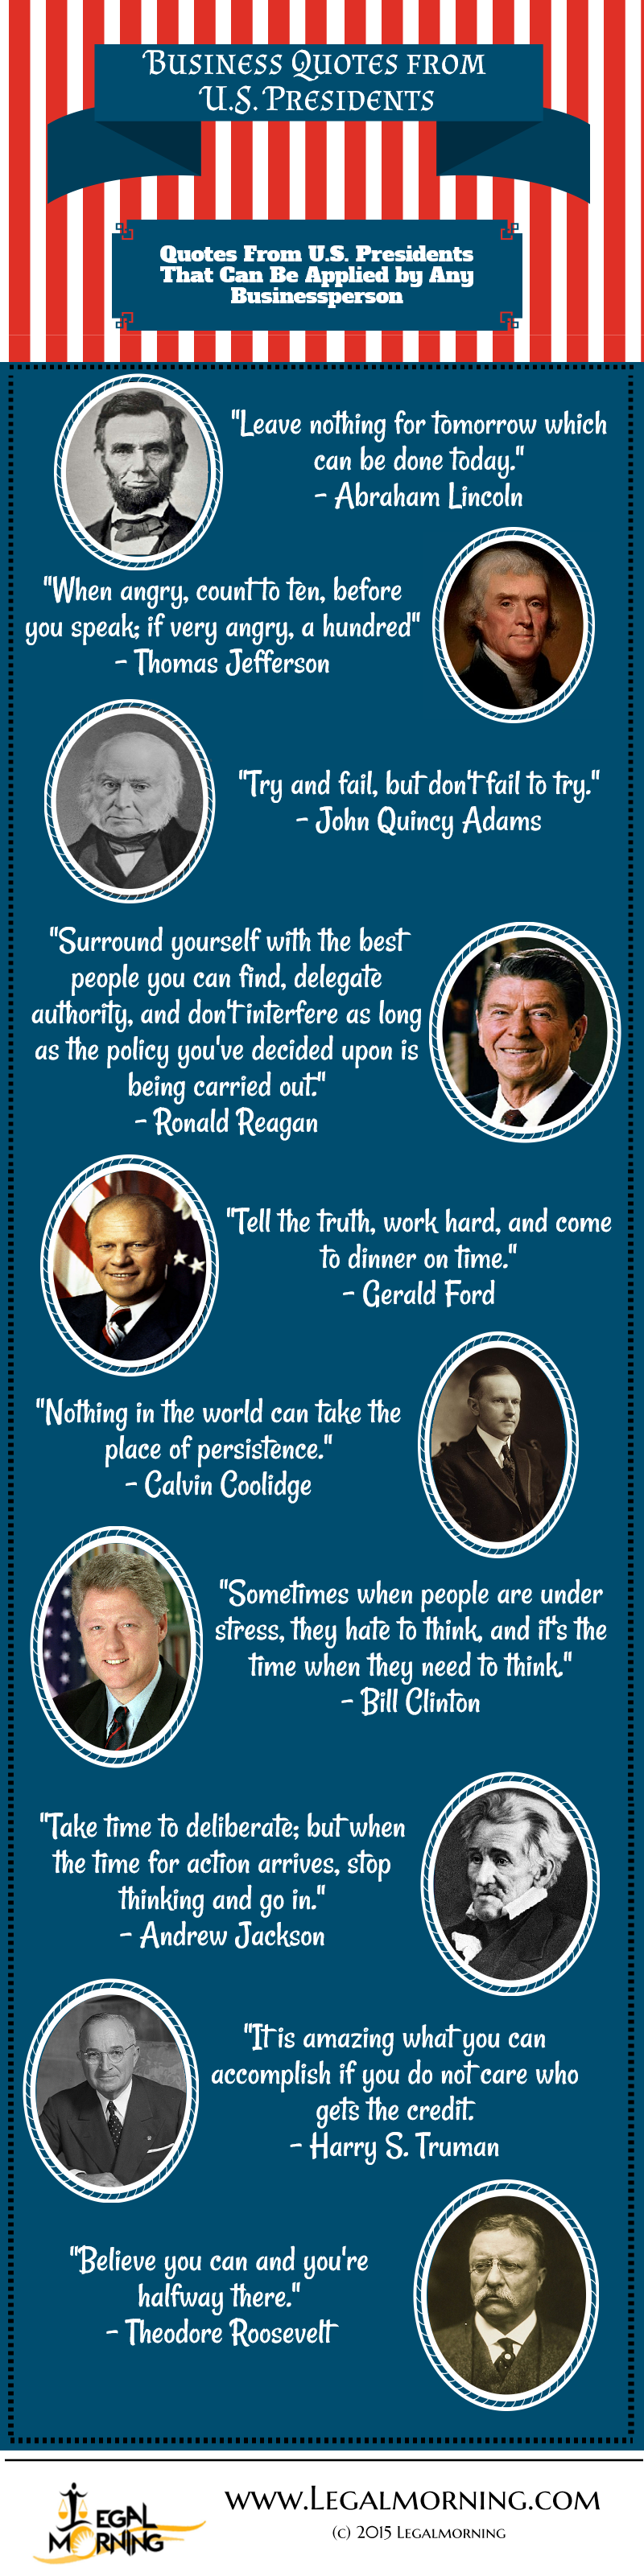 Business Quotes from U.S. Presidents-1